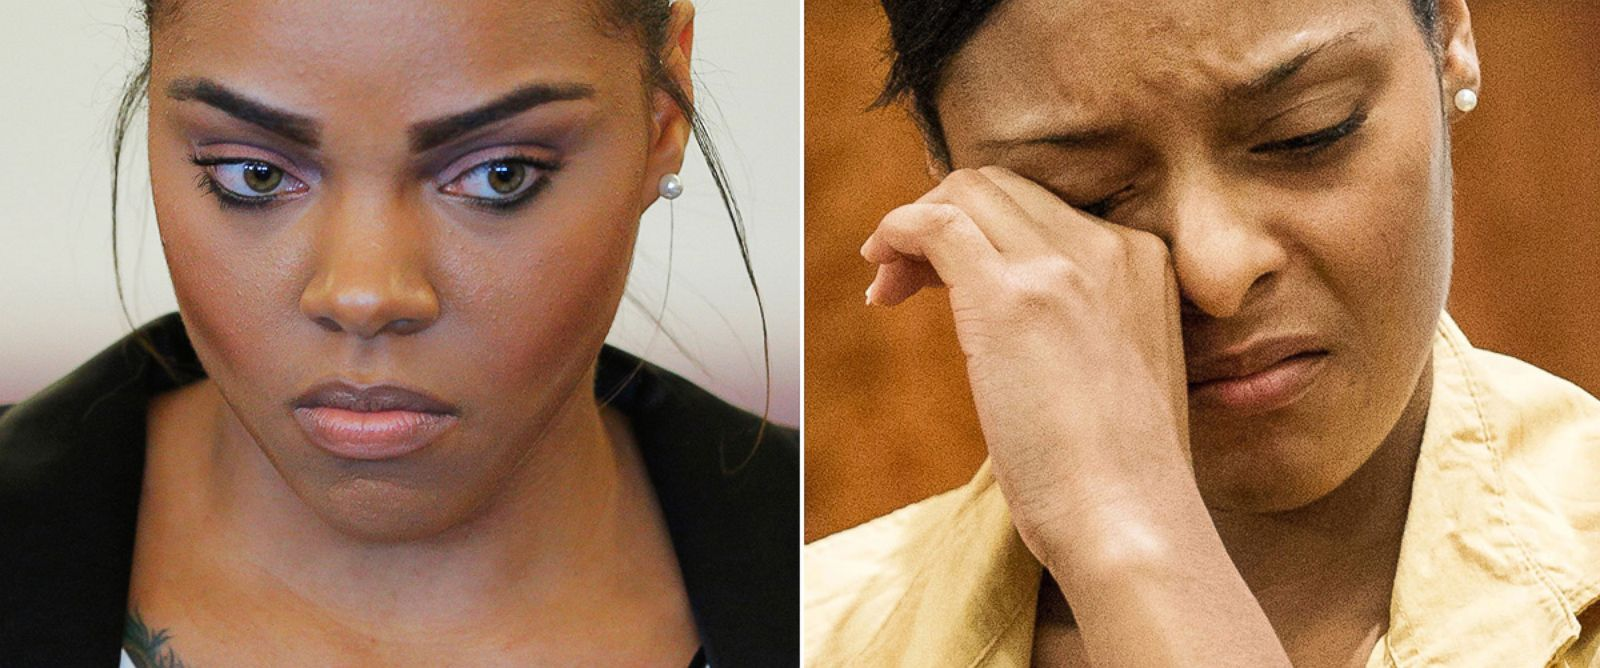 PHOTO: Shayanna Jenkins, left, is pictured in Fall River, Mass. on Dec. 22, 2014. Shaneah Jenkins, right, is pictured in Fall River, Mass. on Feb. 3, 2015.